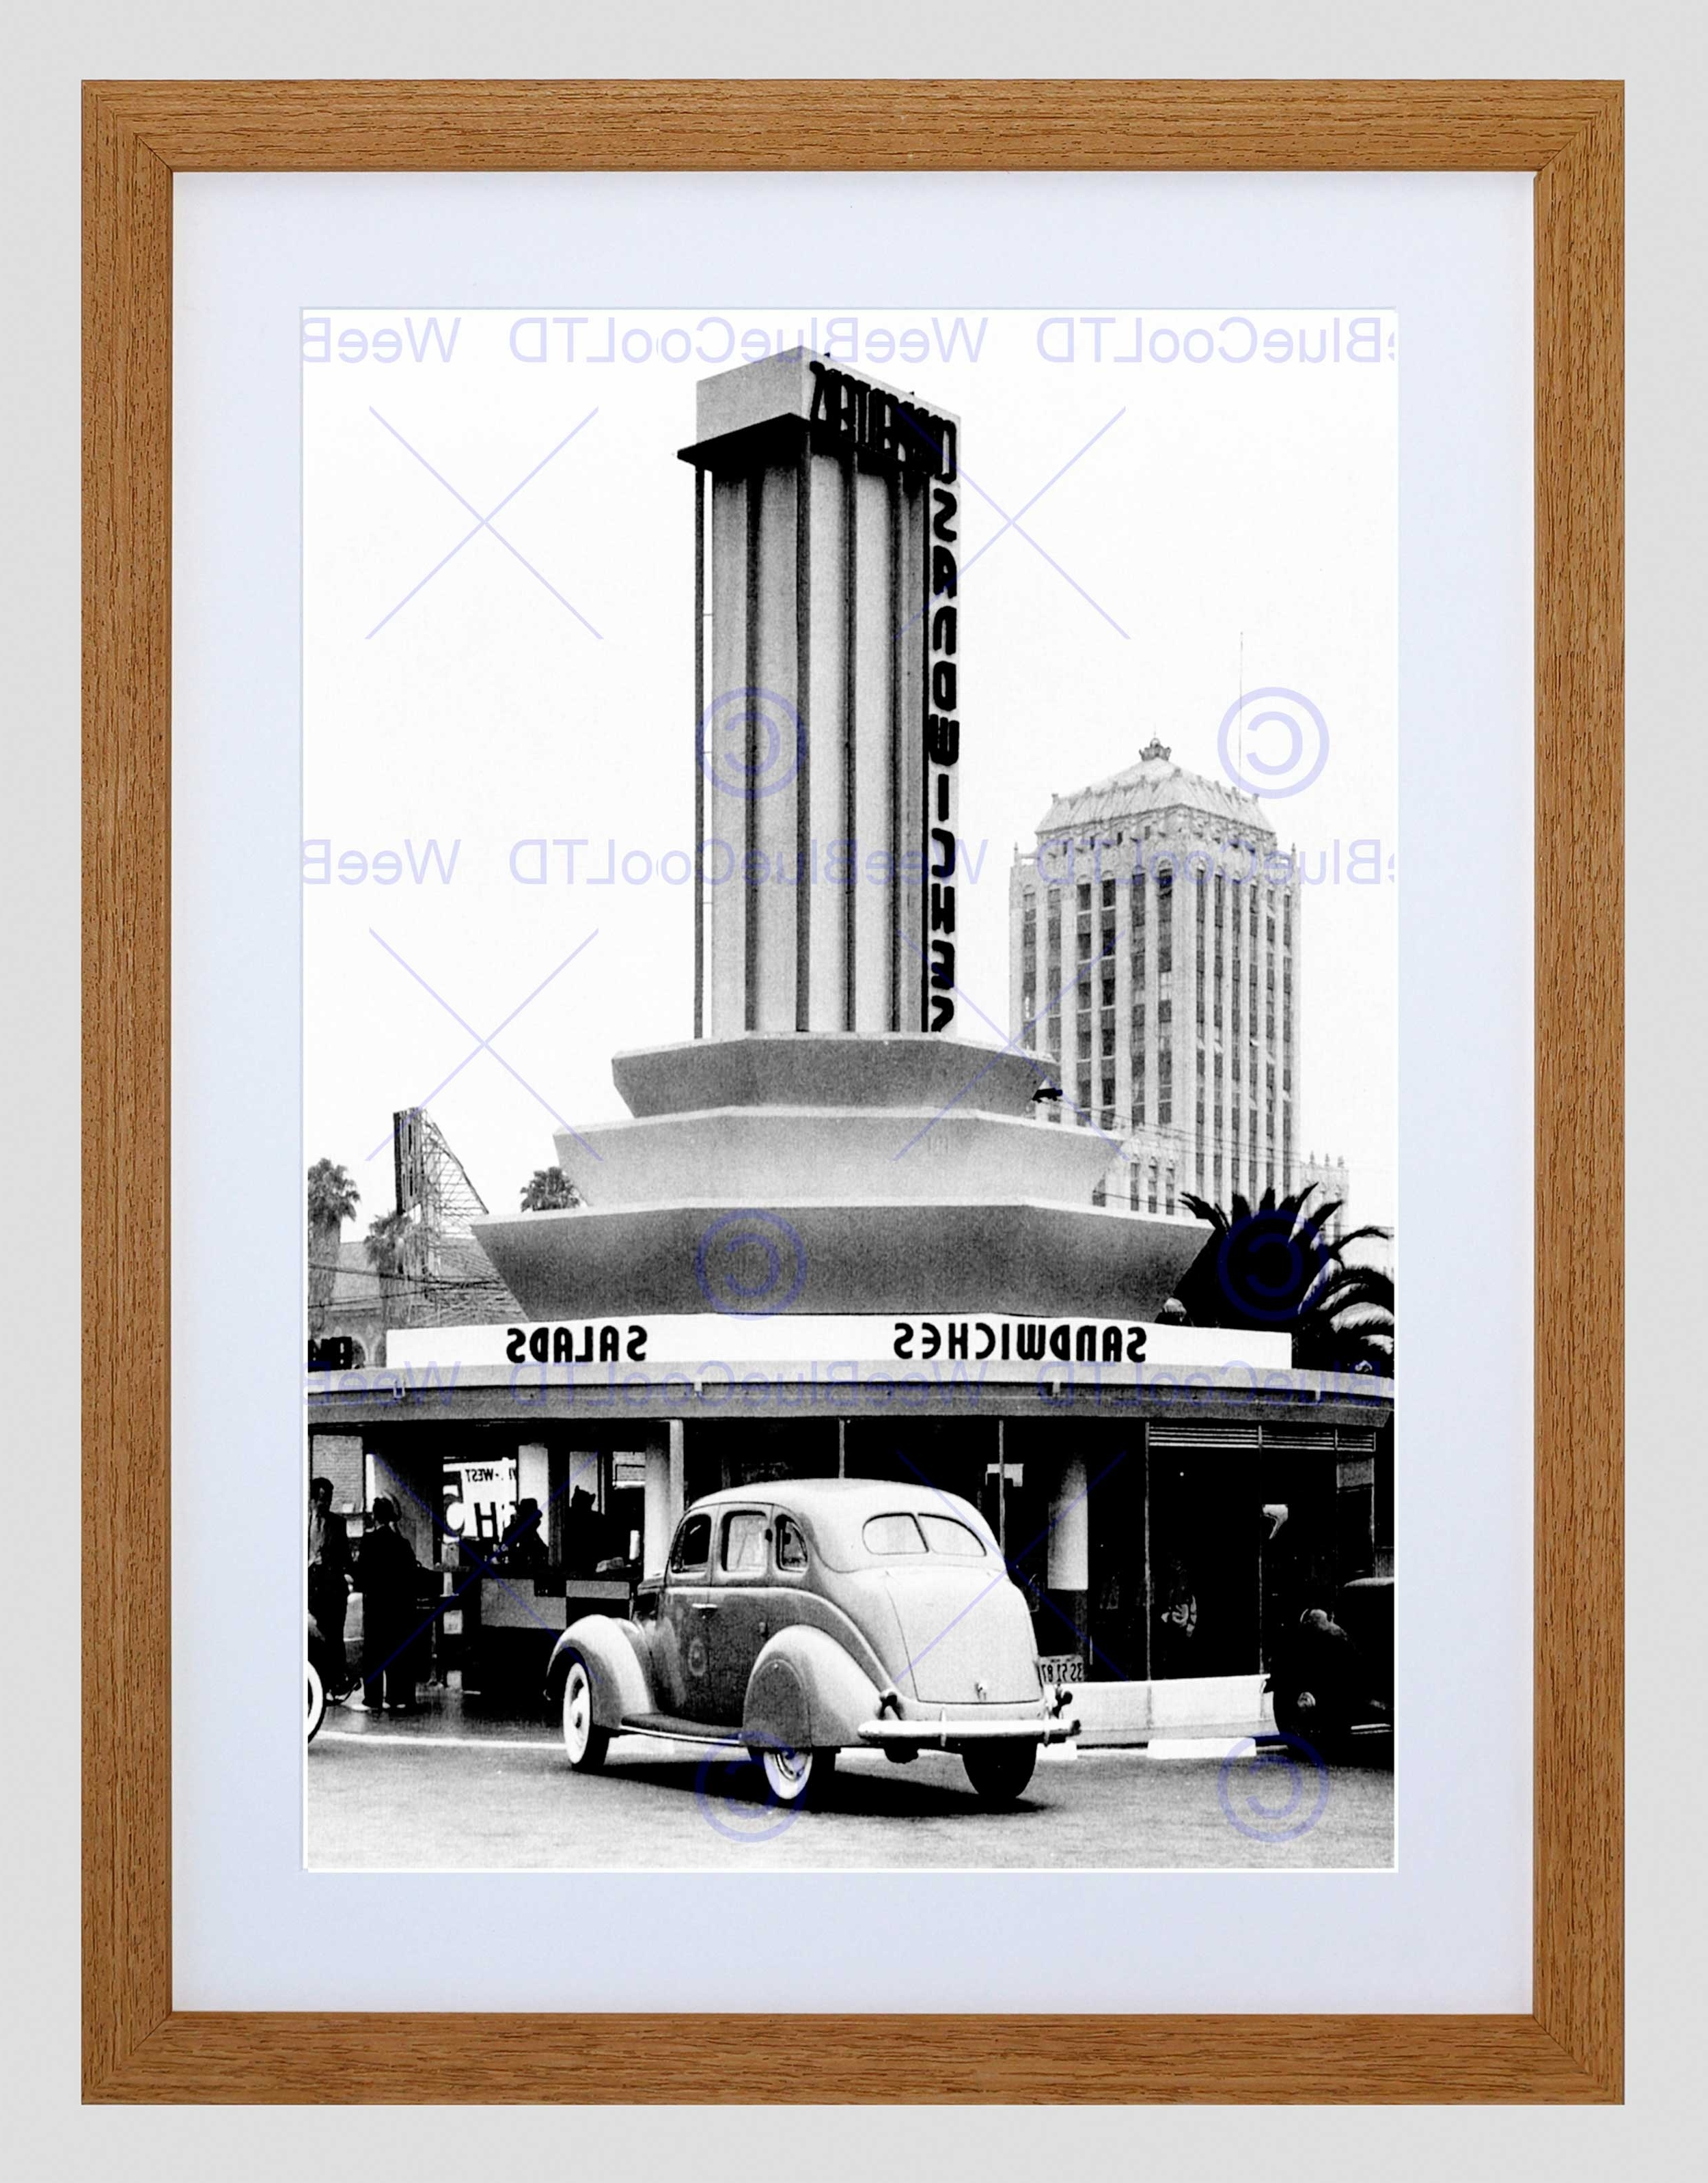 Well Known Los Angeles Framed Art Prints With Regard To Vintage Sandwich Shop Los Angeles California Usa Framed Art Print (View 8 of 15)